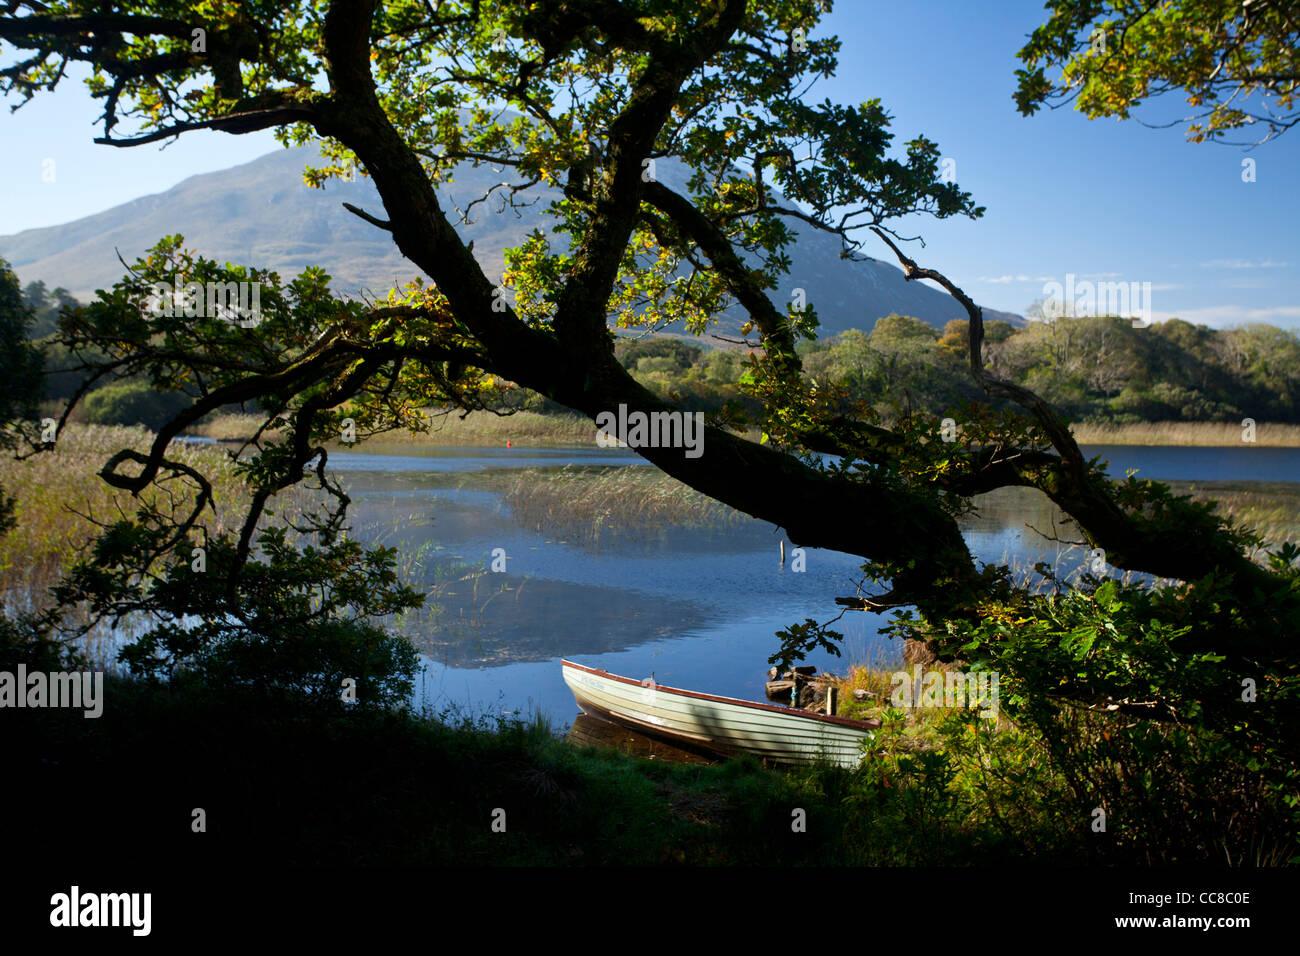 Fishing boat on the shore of Lough Maladrolaun, beside Kylemore House, Connemara, County Galway, Ireland. - Stock Image